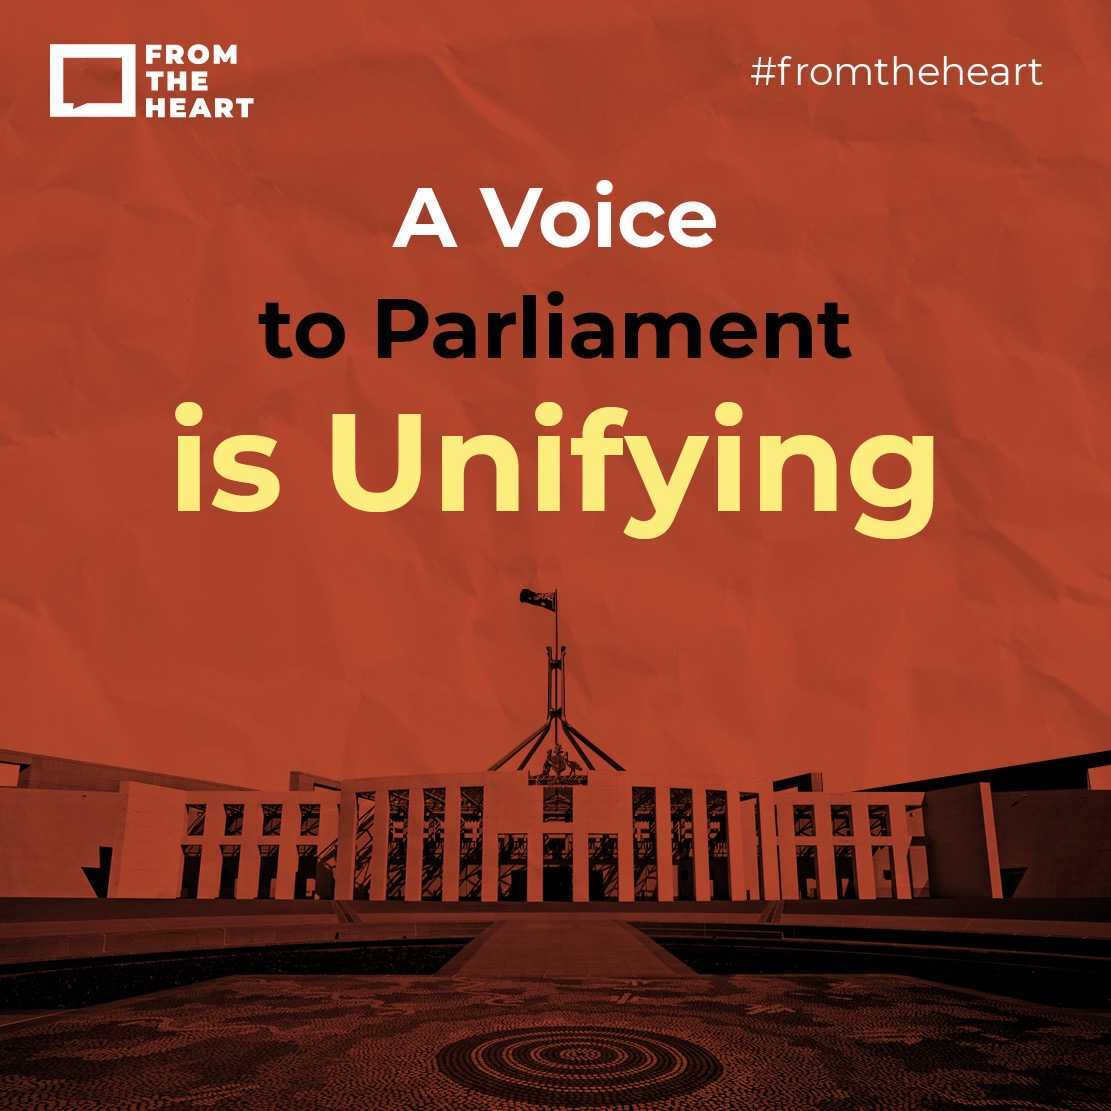 A Voice to Parliament is unifying Instagram template